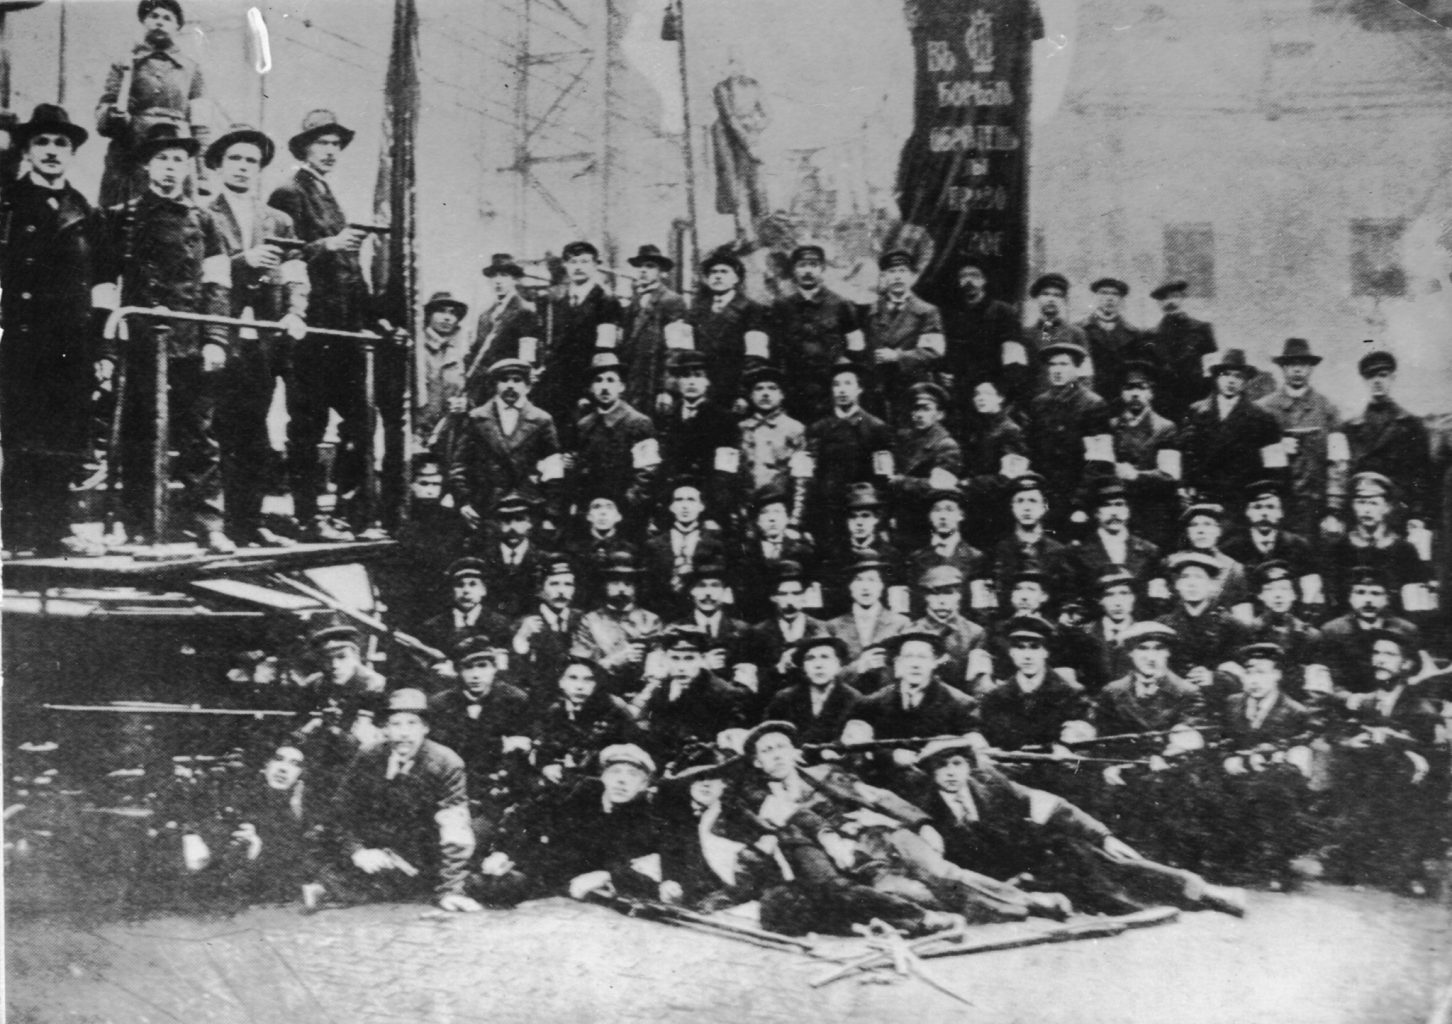 7. Scrss Bolshevik Red Guards from an electrical factory in Petrograd, 1917.